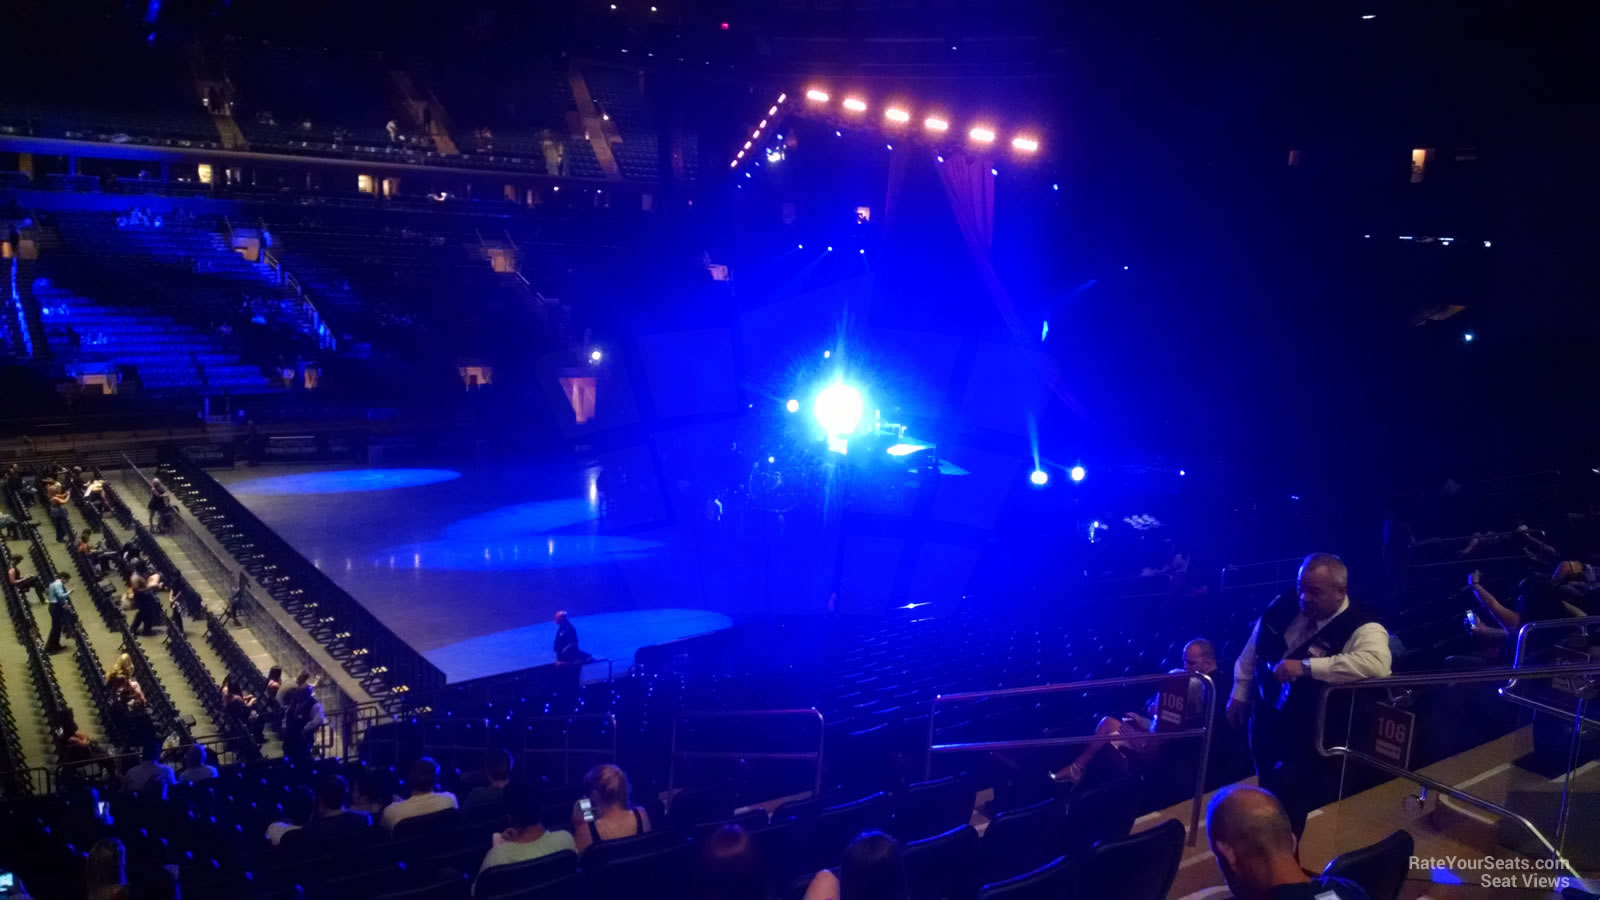 Madison Square Garden Section 106 Concert Seating